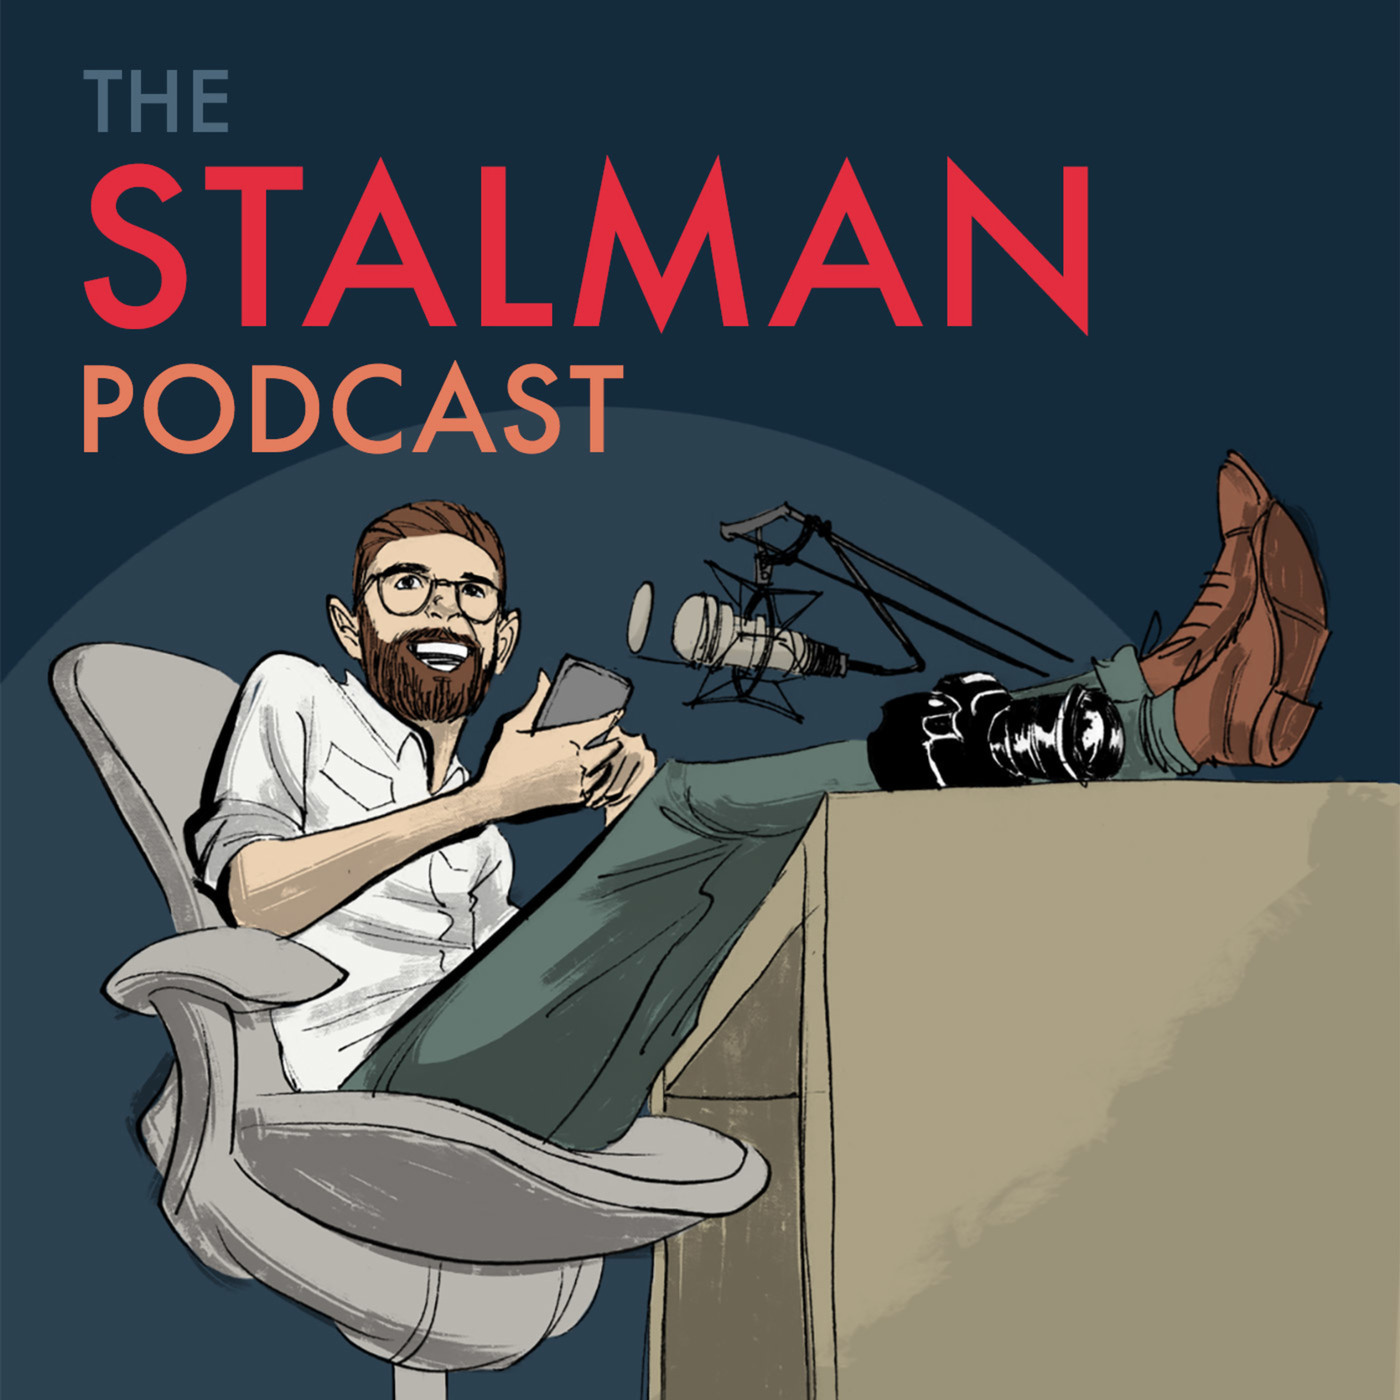 The Stalman Podcast 69: Year of the Pro, with Myke Hurley